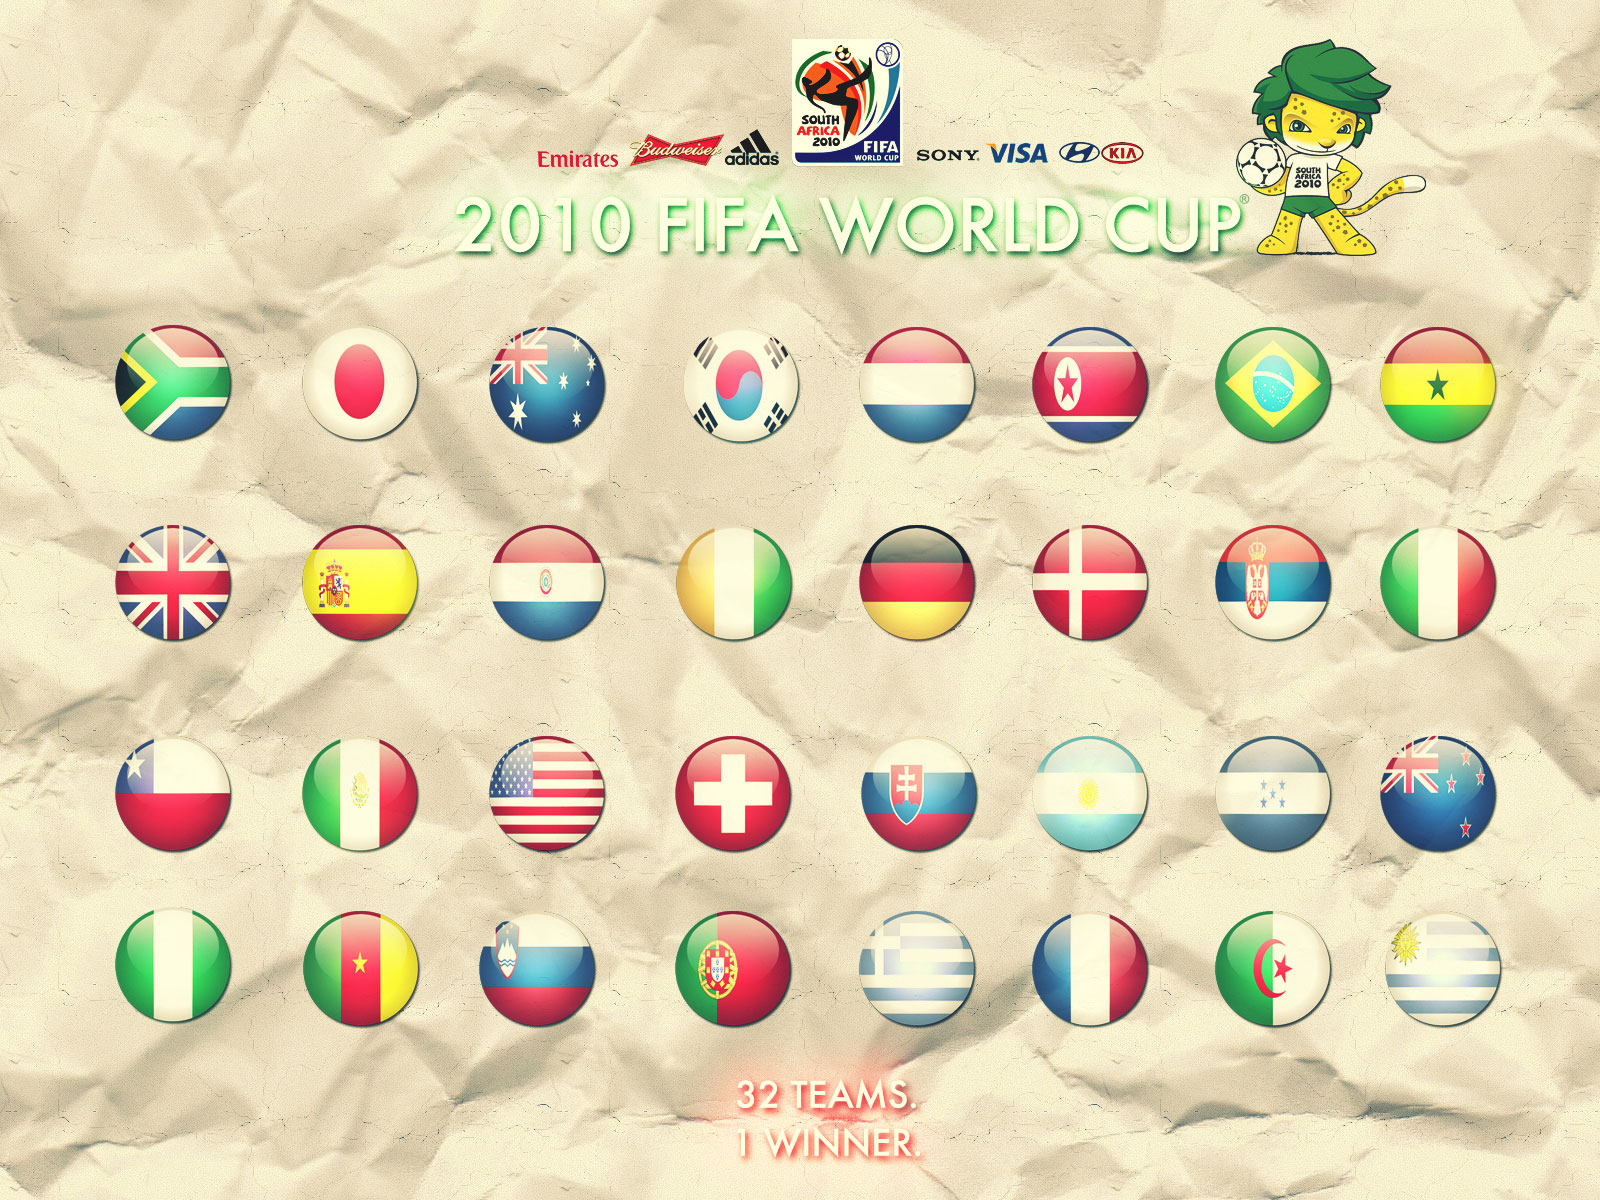 2010 Fifa World Cup - Desktop Wallpaper Images!